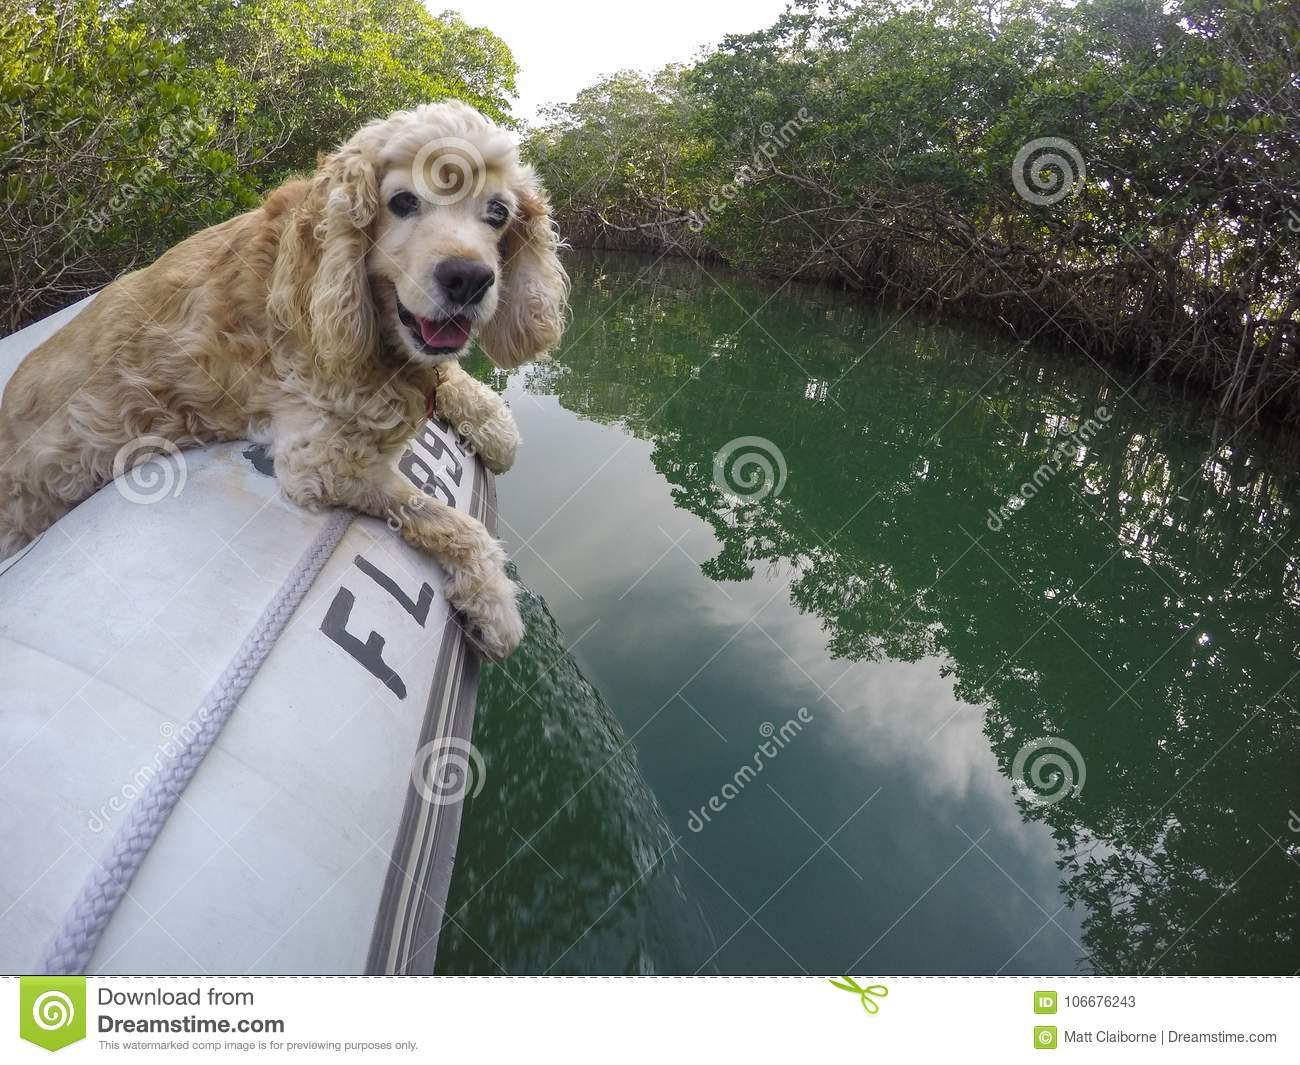 Boat dog takes a dinghy ride